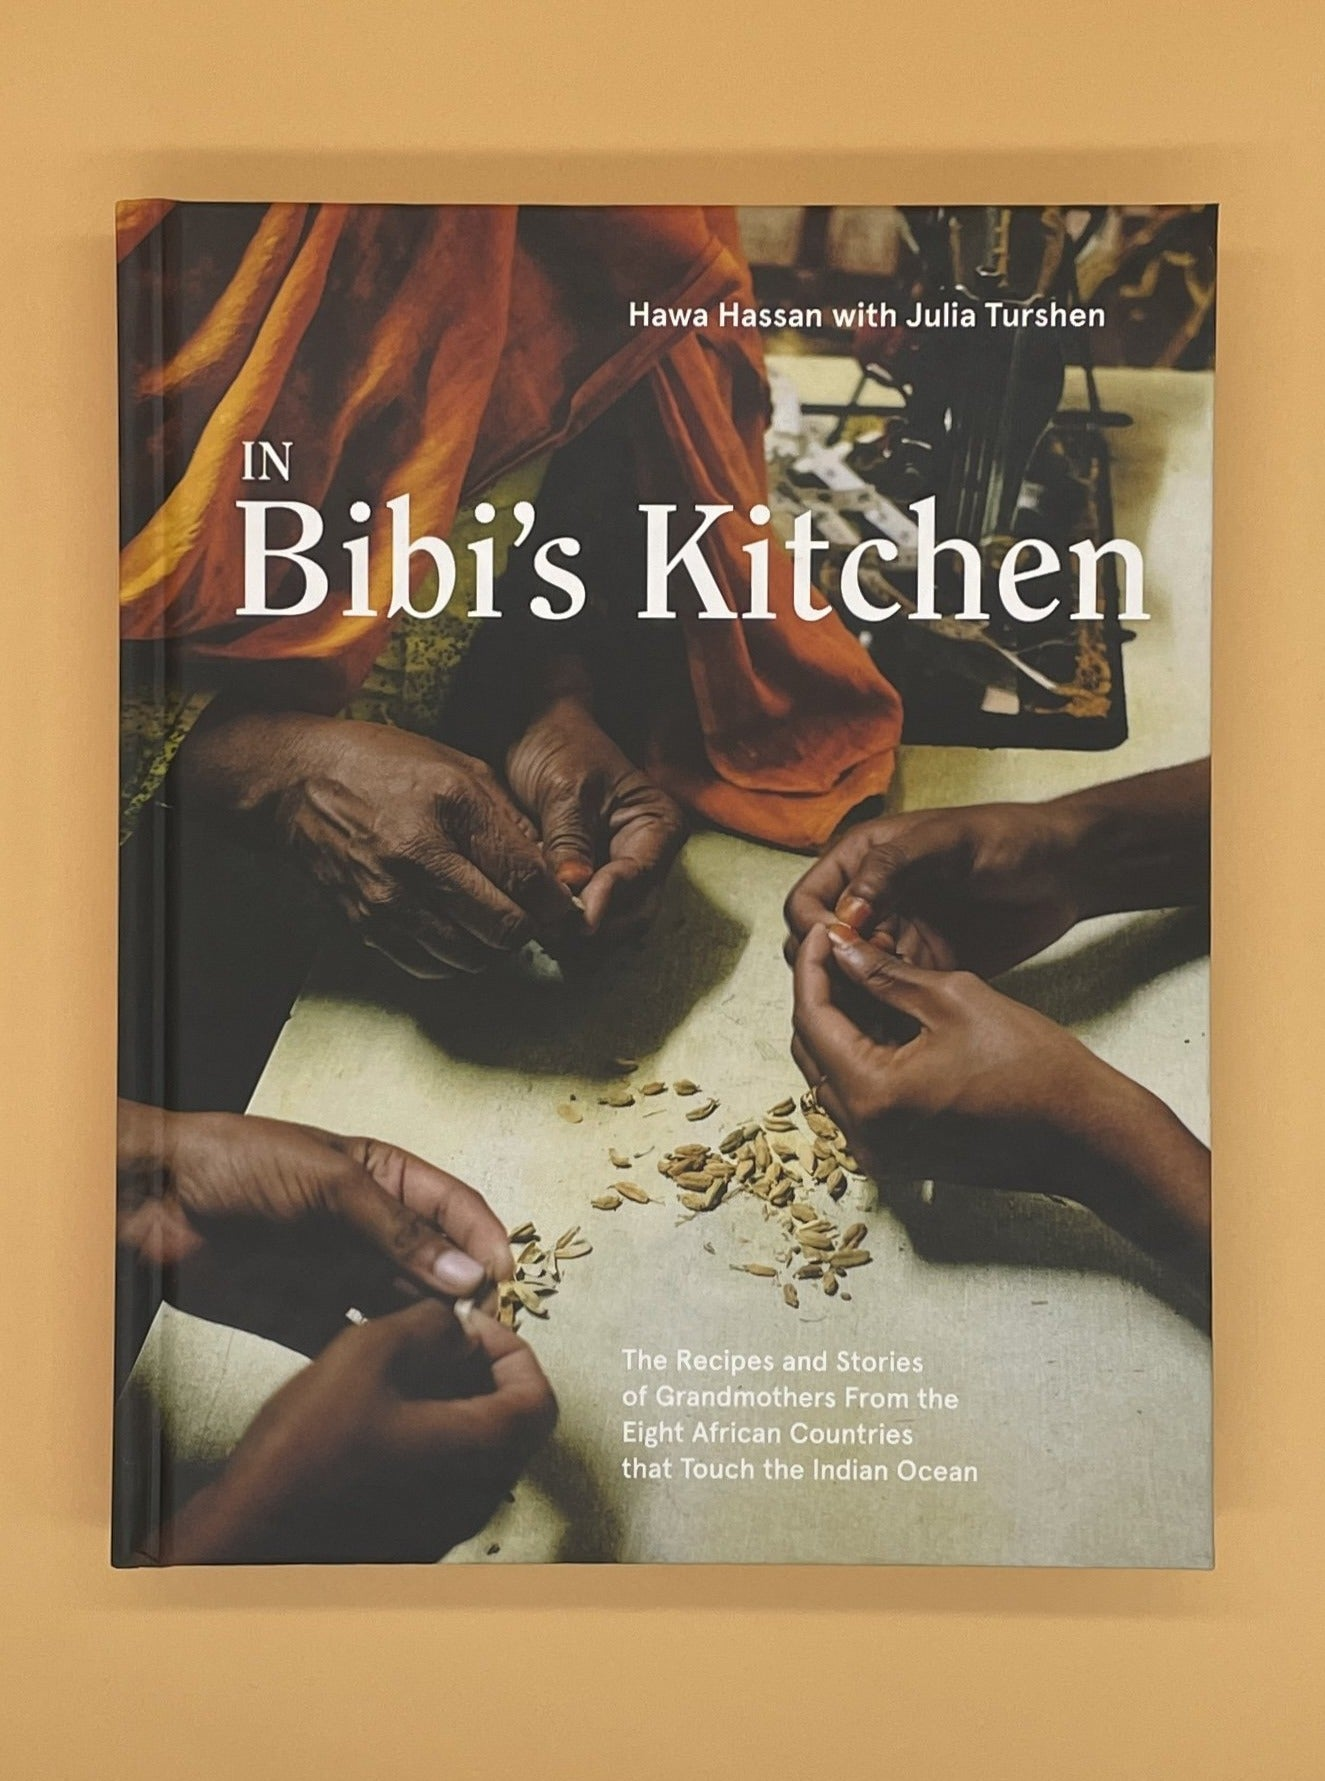 In Bibi's Kitchen: The Recipes and Stories of Grandmothers from the Eight African Countries That Touch the Indian Ocean (Hawa Hassan)